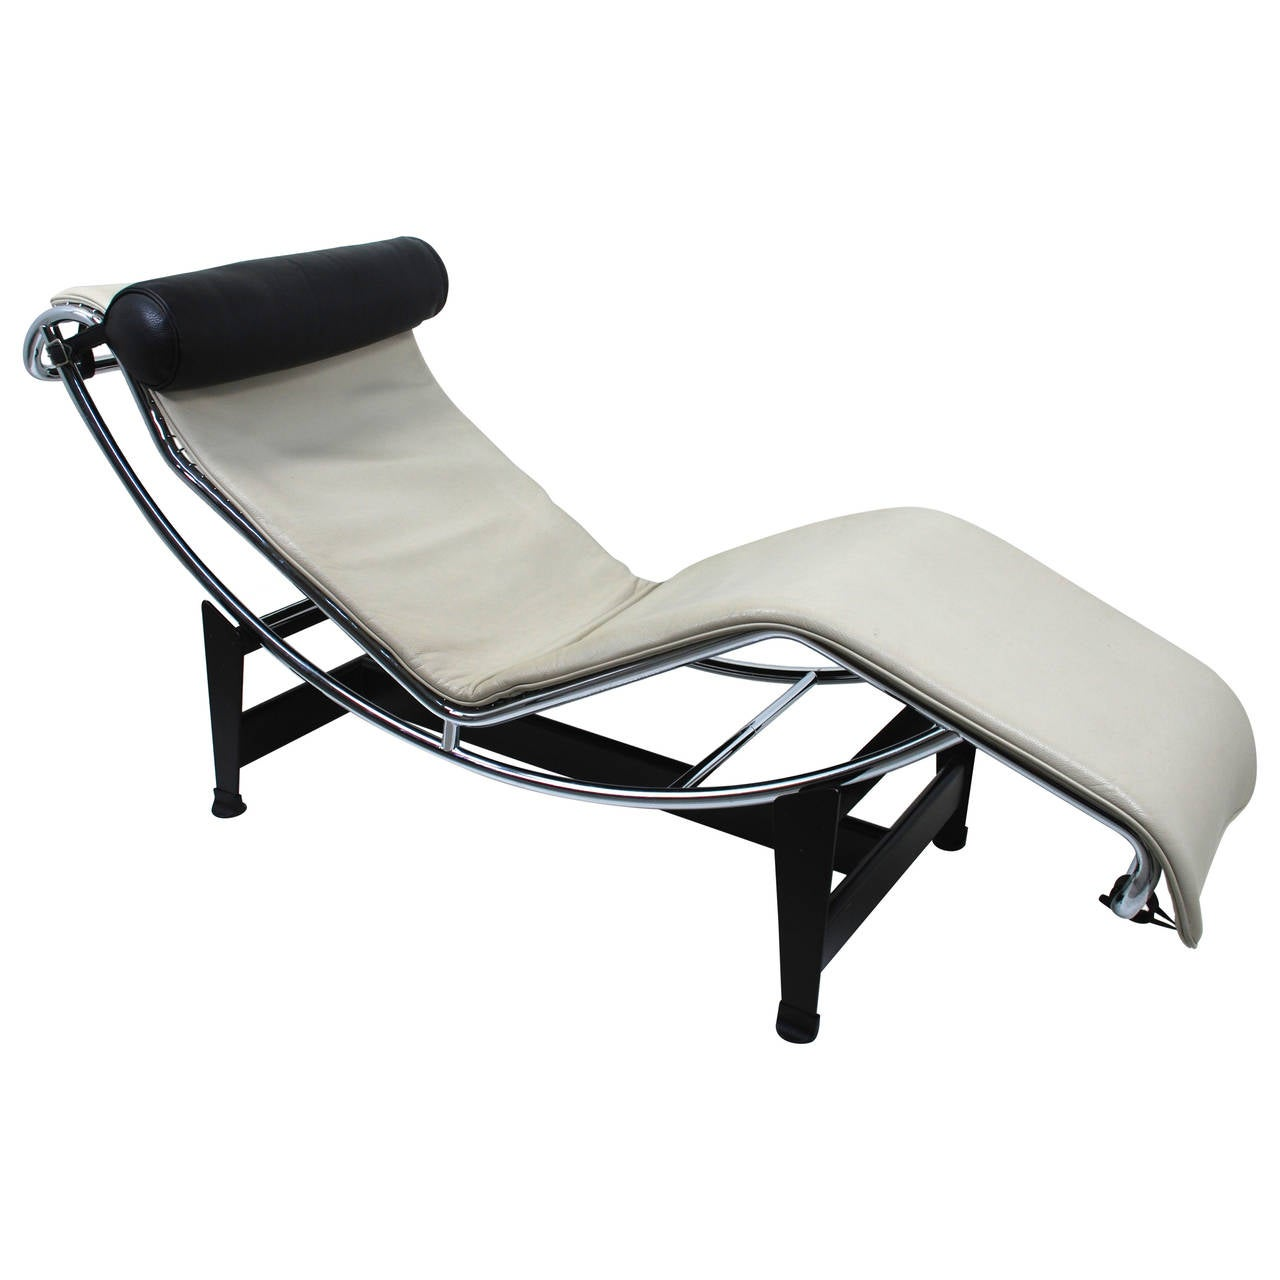 Le corbusier 39 lc 4 39 chaise longue 1928 at 1stdibs for Chaise longue le corbusier precio